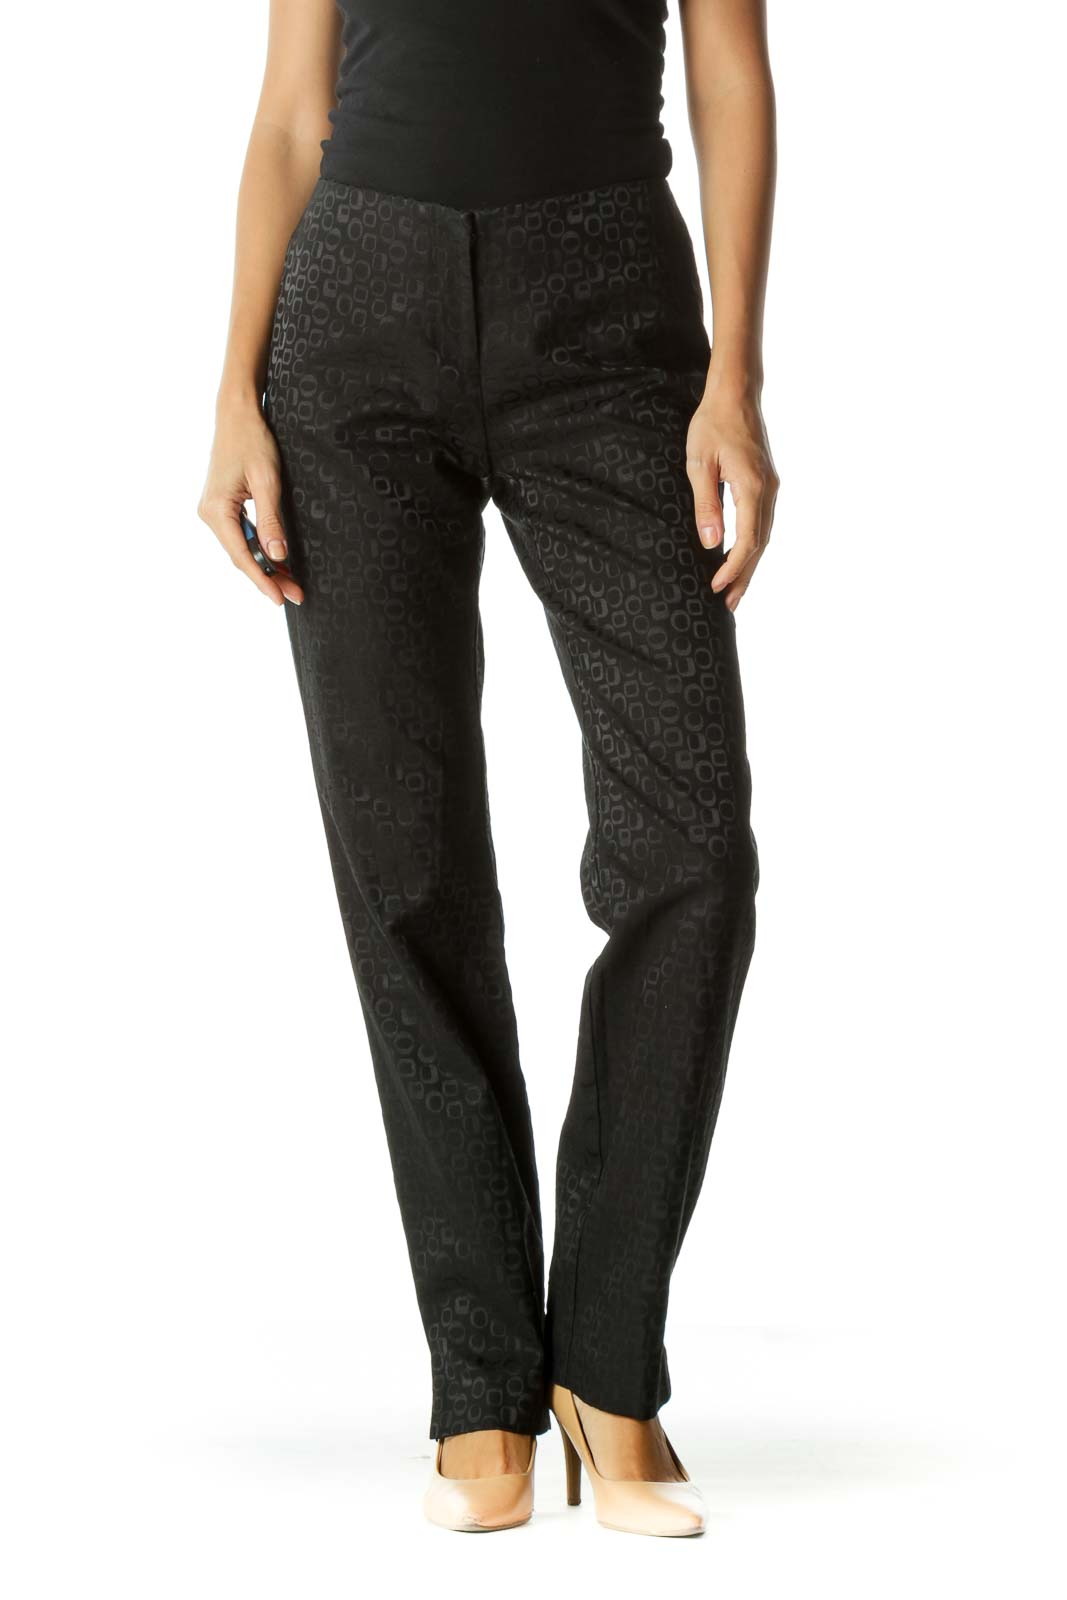 Black Jacquard Textured Print Pants